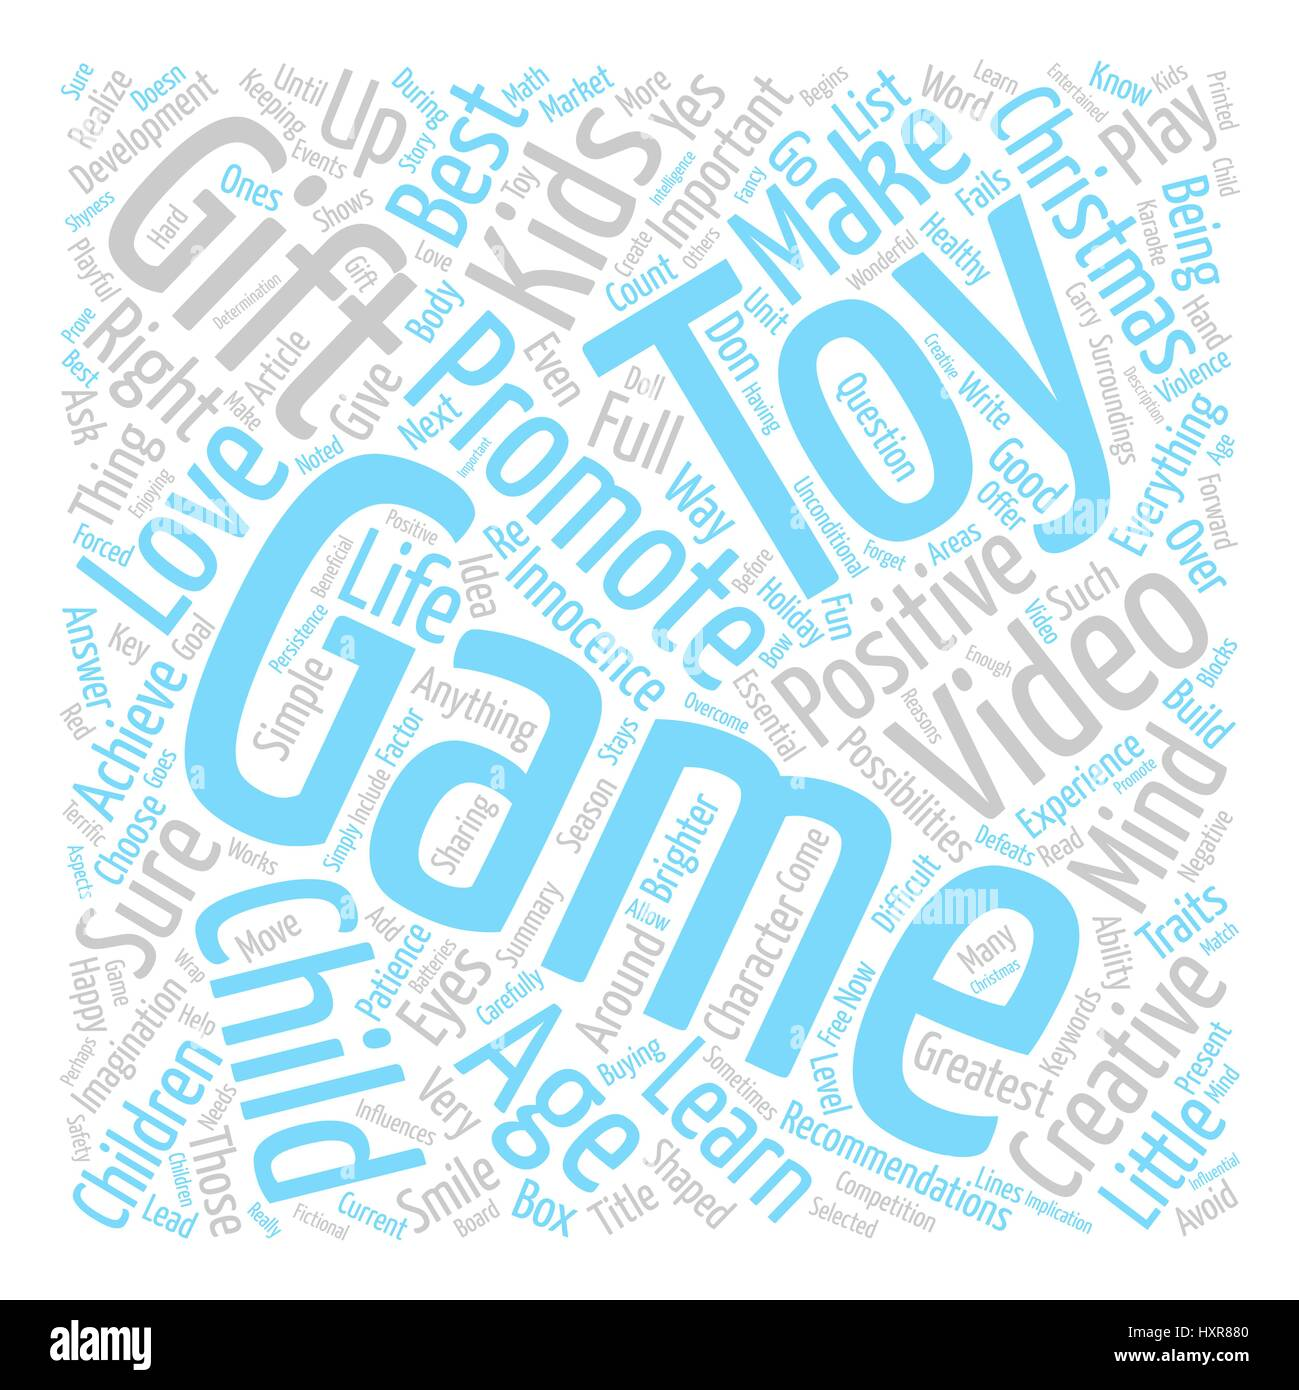 Are Toys Video Games The Right Christmas Gifts For Kids Word Cloud ...